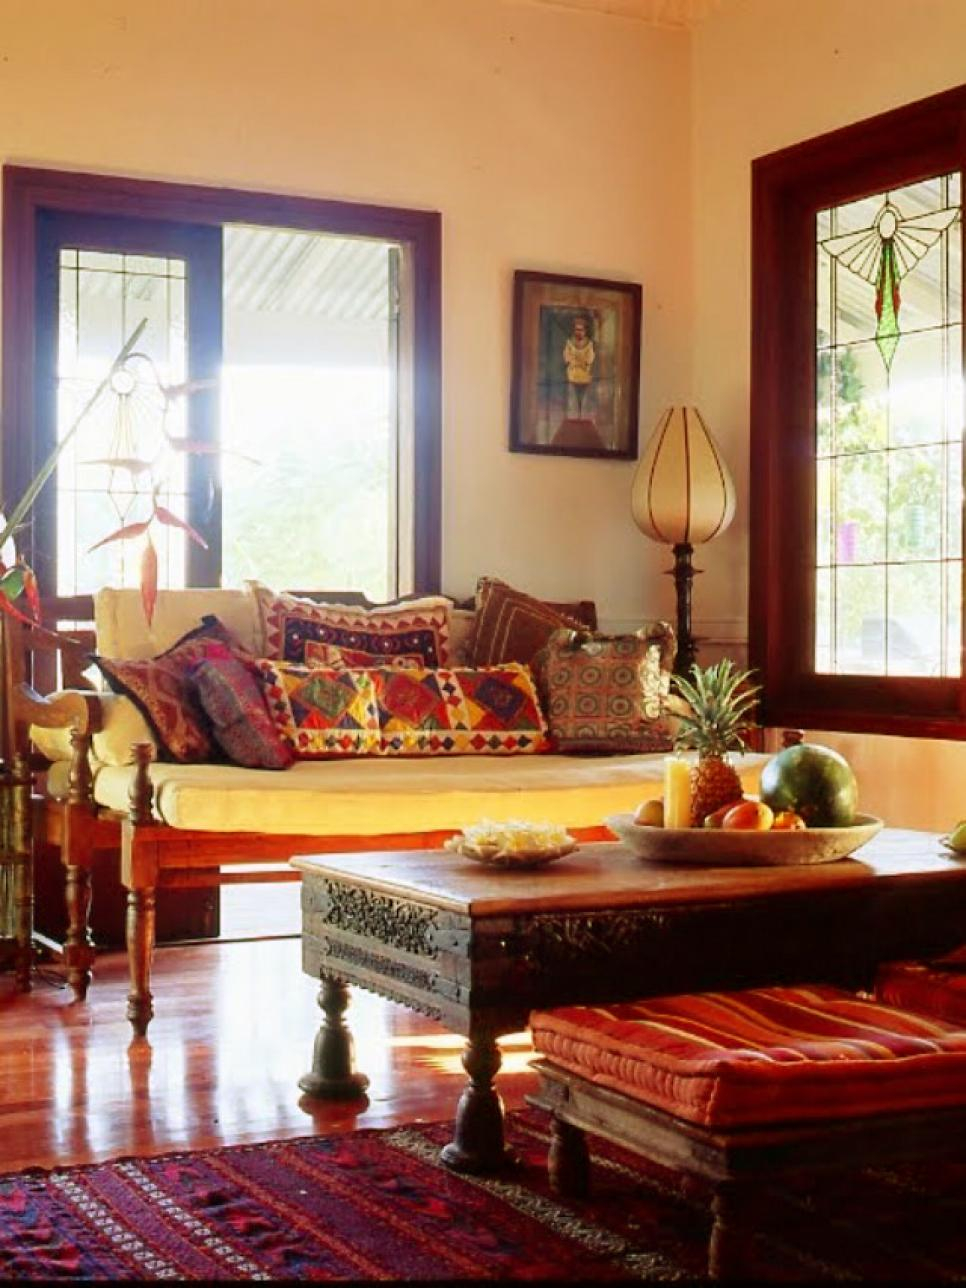 Modular Living Room Decorating Ideas Indian Style Unique Hall Indian House intended for Lovely Indian Home Decor Ideas Living Room